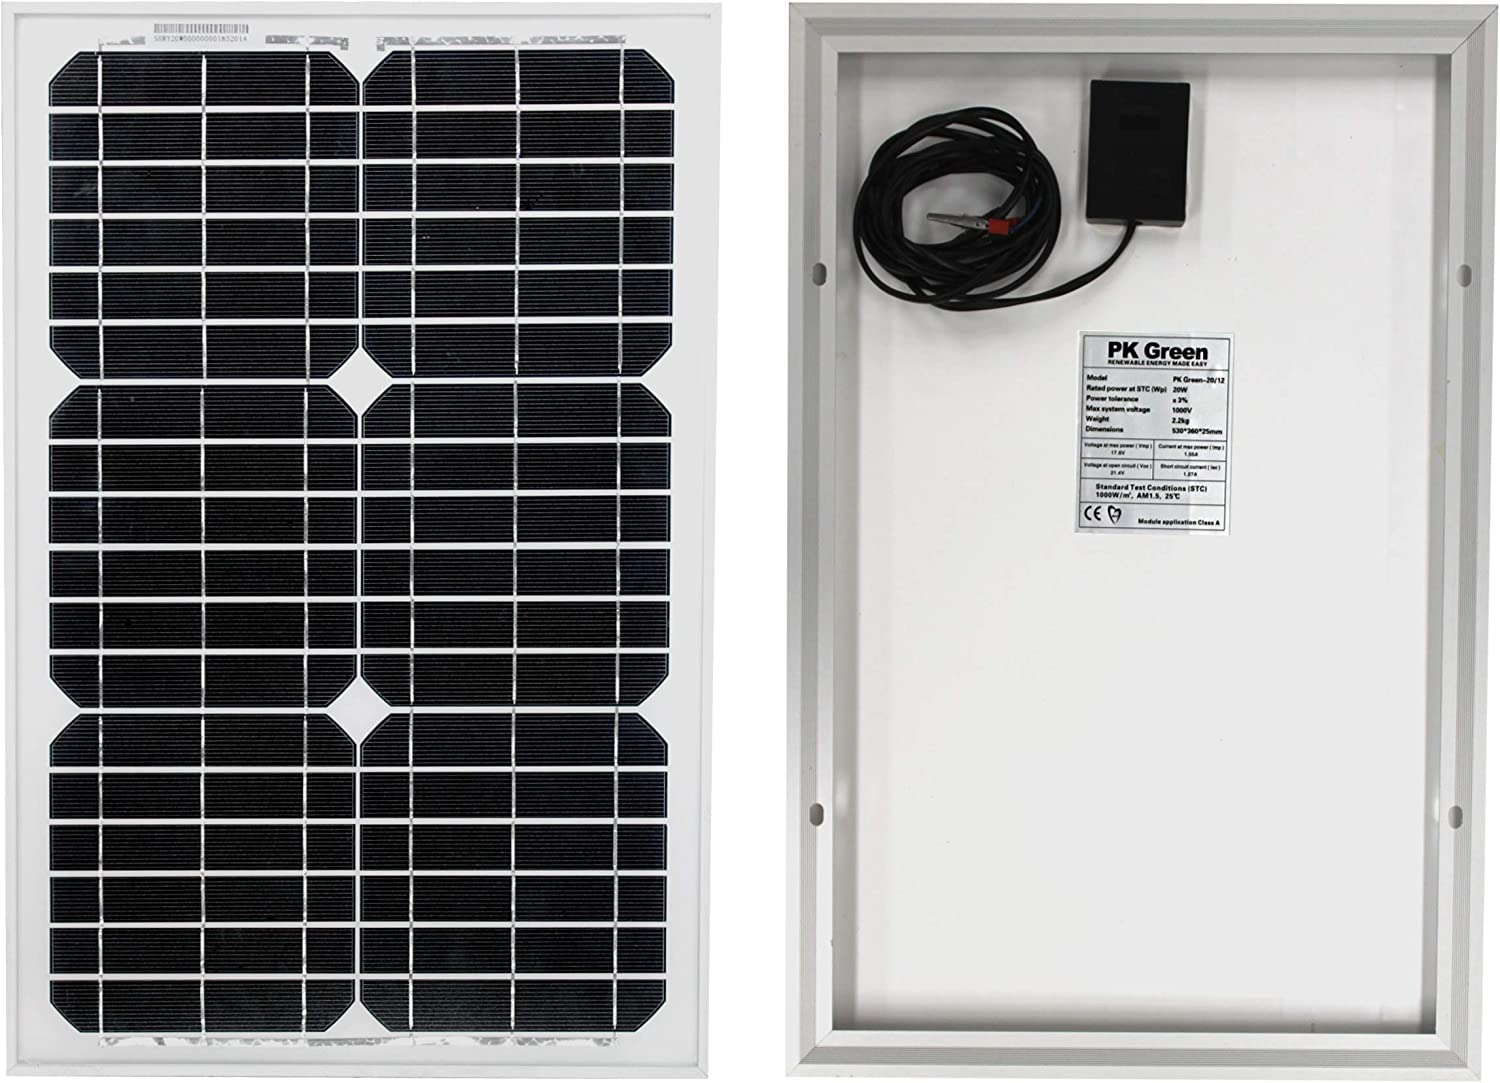 PK Green 20W Solar Panel Kit and Cable for 12V Battery, Caravan, Boat, Shed, Car, Motorhome, Camping, Off Grid